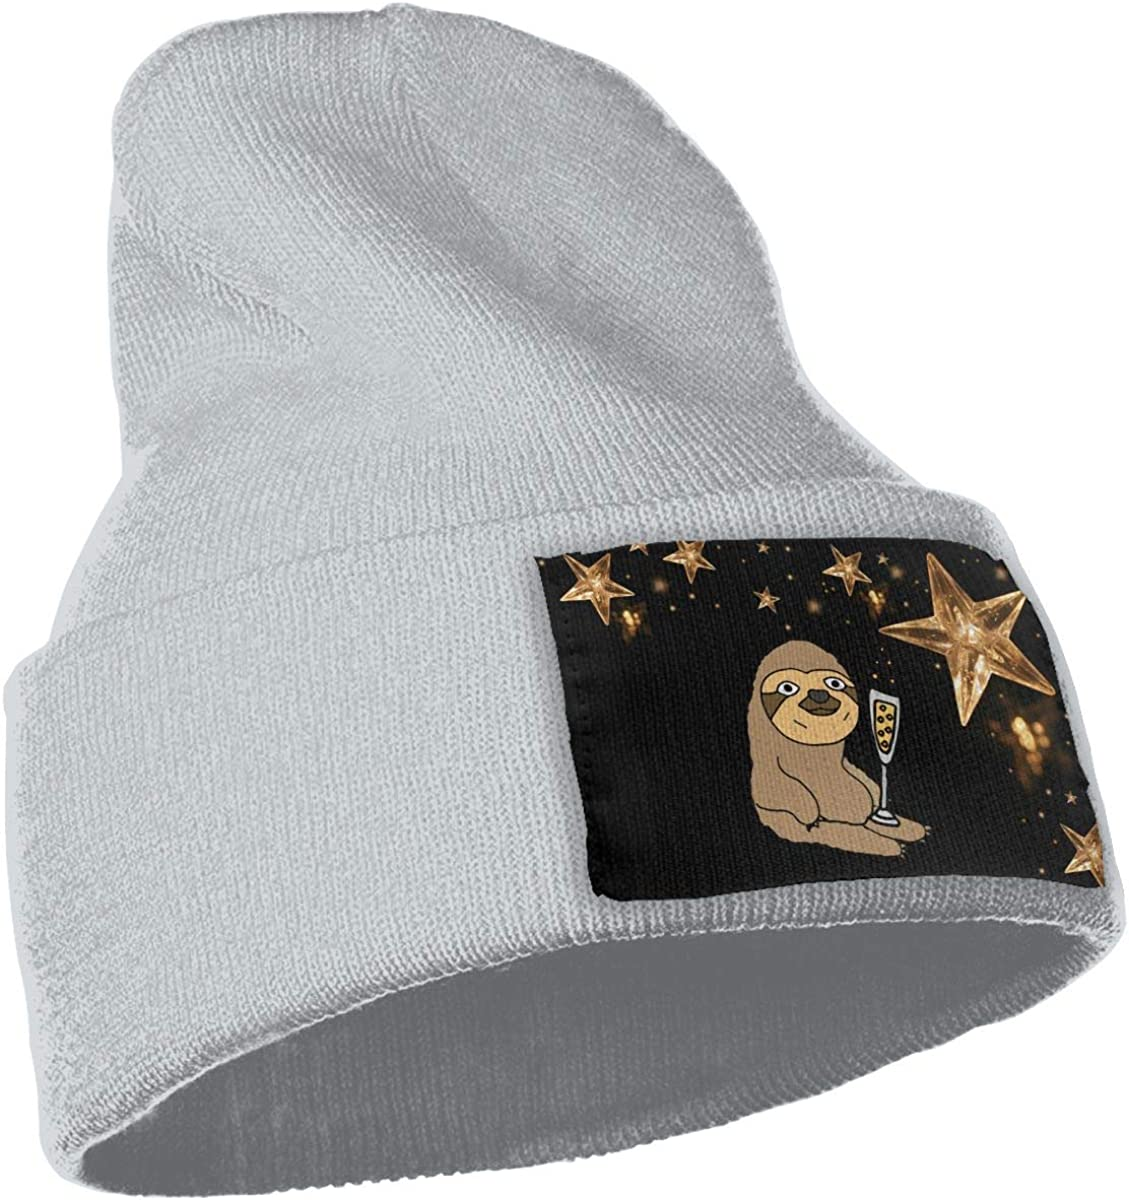 COLLJL-8 Men /& Women Sloth Drinking Champagne Outdoor Stretch Knit Beanies Hat Soft Winter Skull Caps